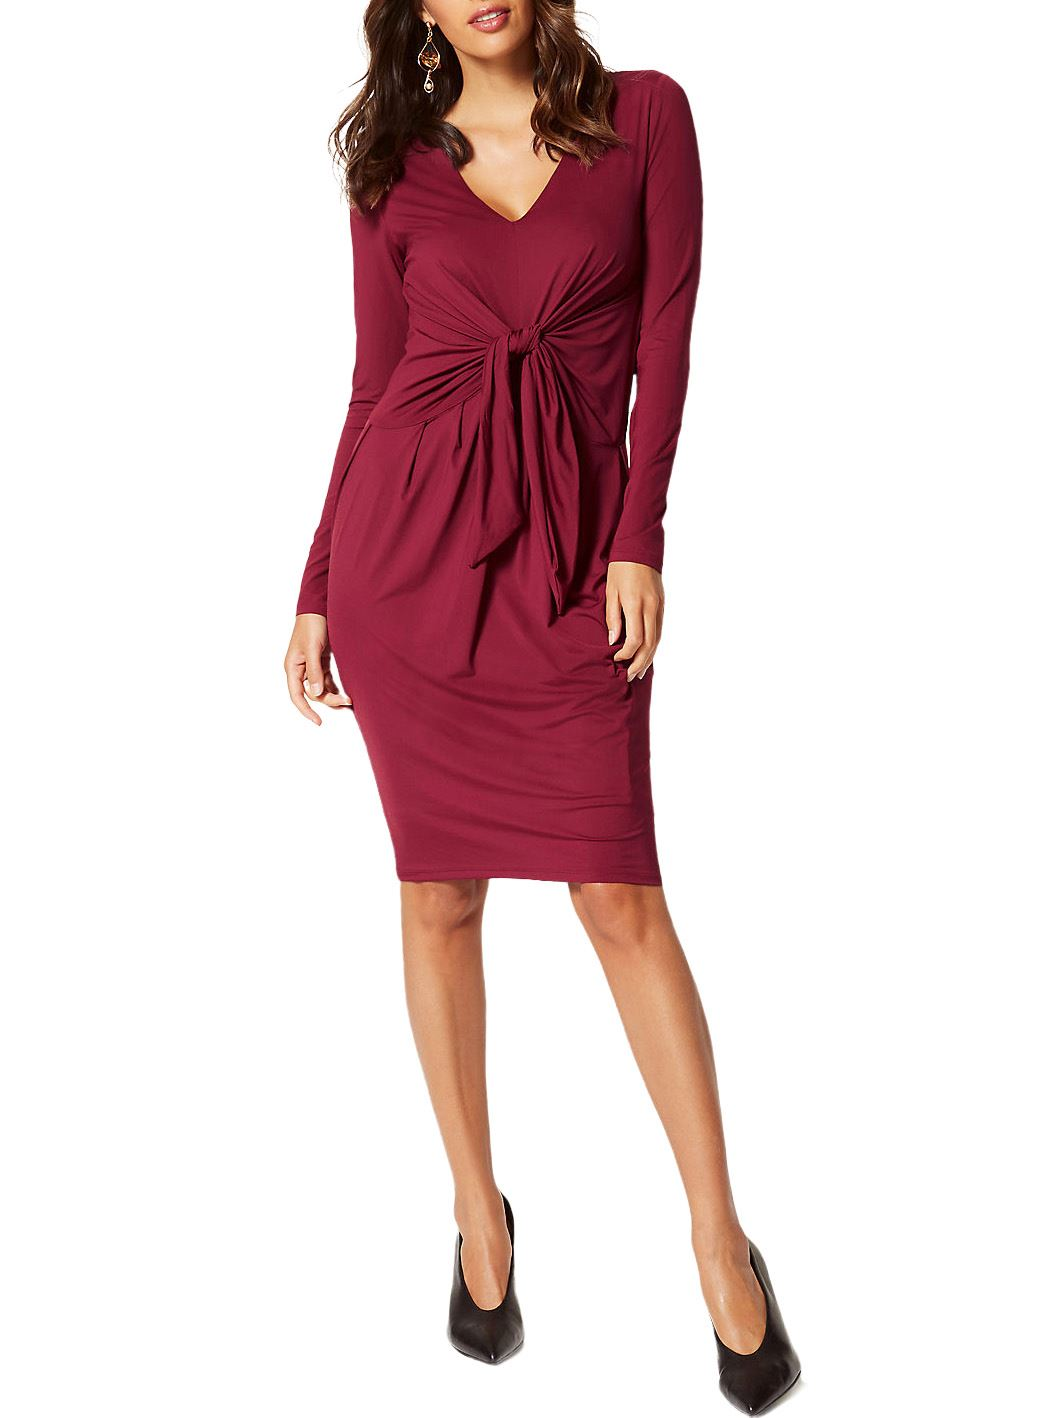 Ex-M-amp-S-Marks-Spencer-Tie-Front-Stretch-Midi-Dress-Burgundy-or-Black-Size-6-22 thumbnail 6